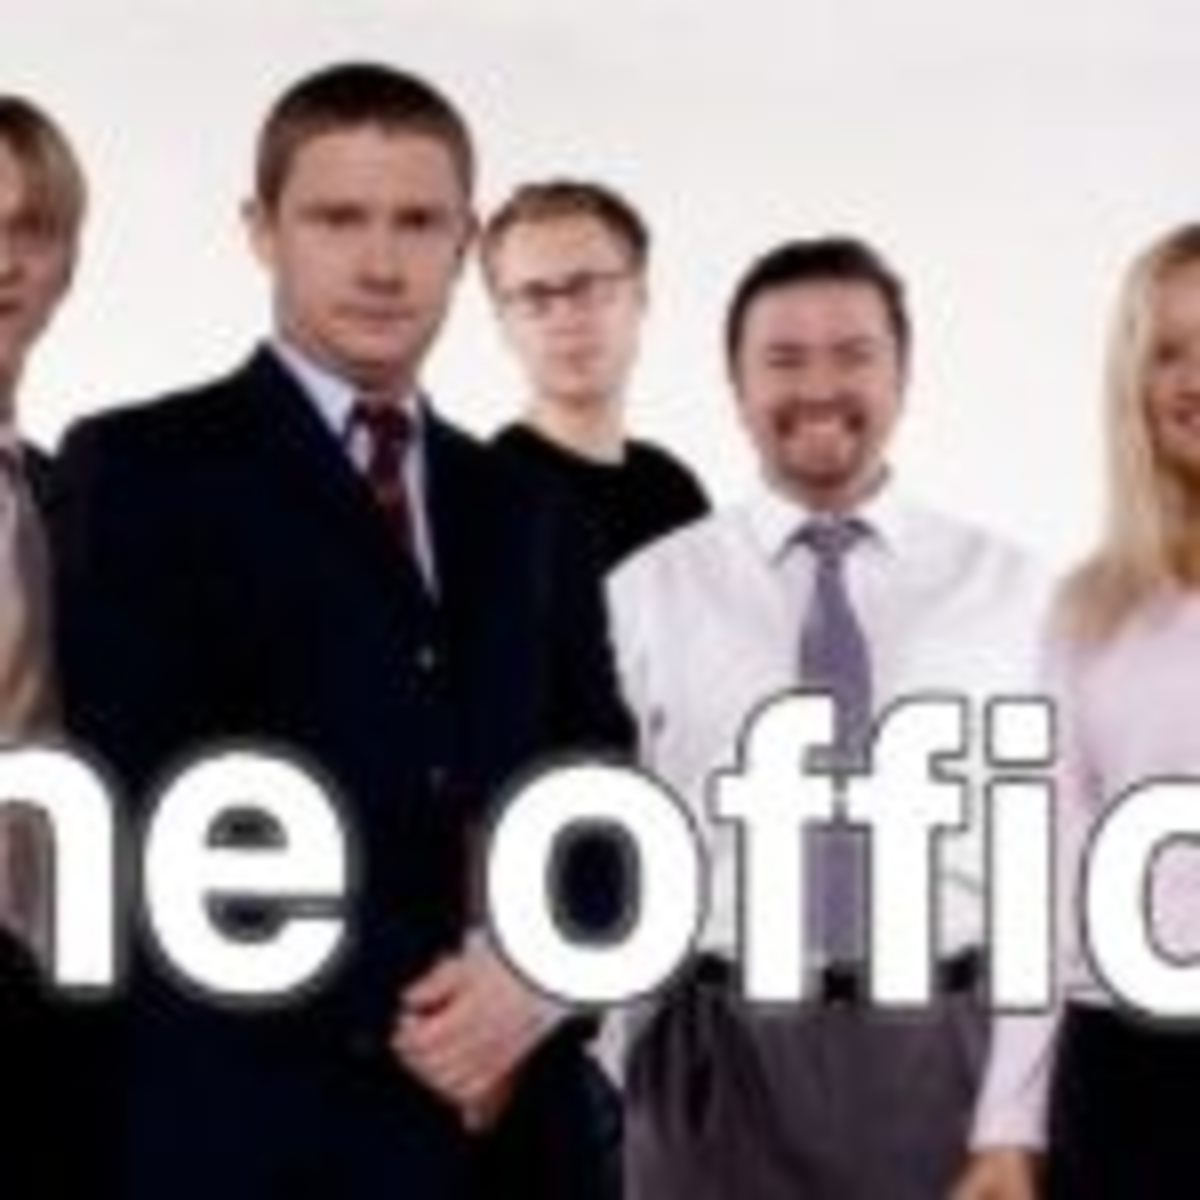 The Office (UK TV series)